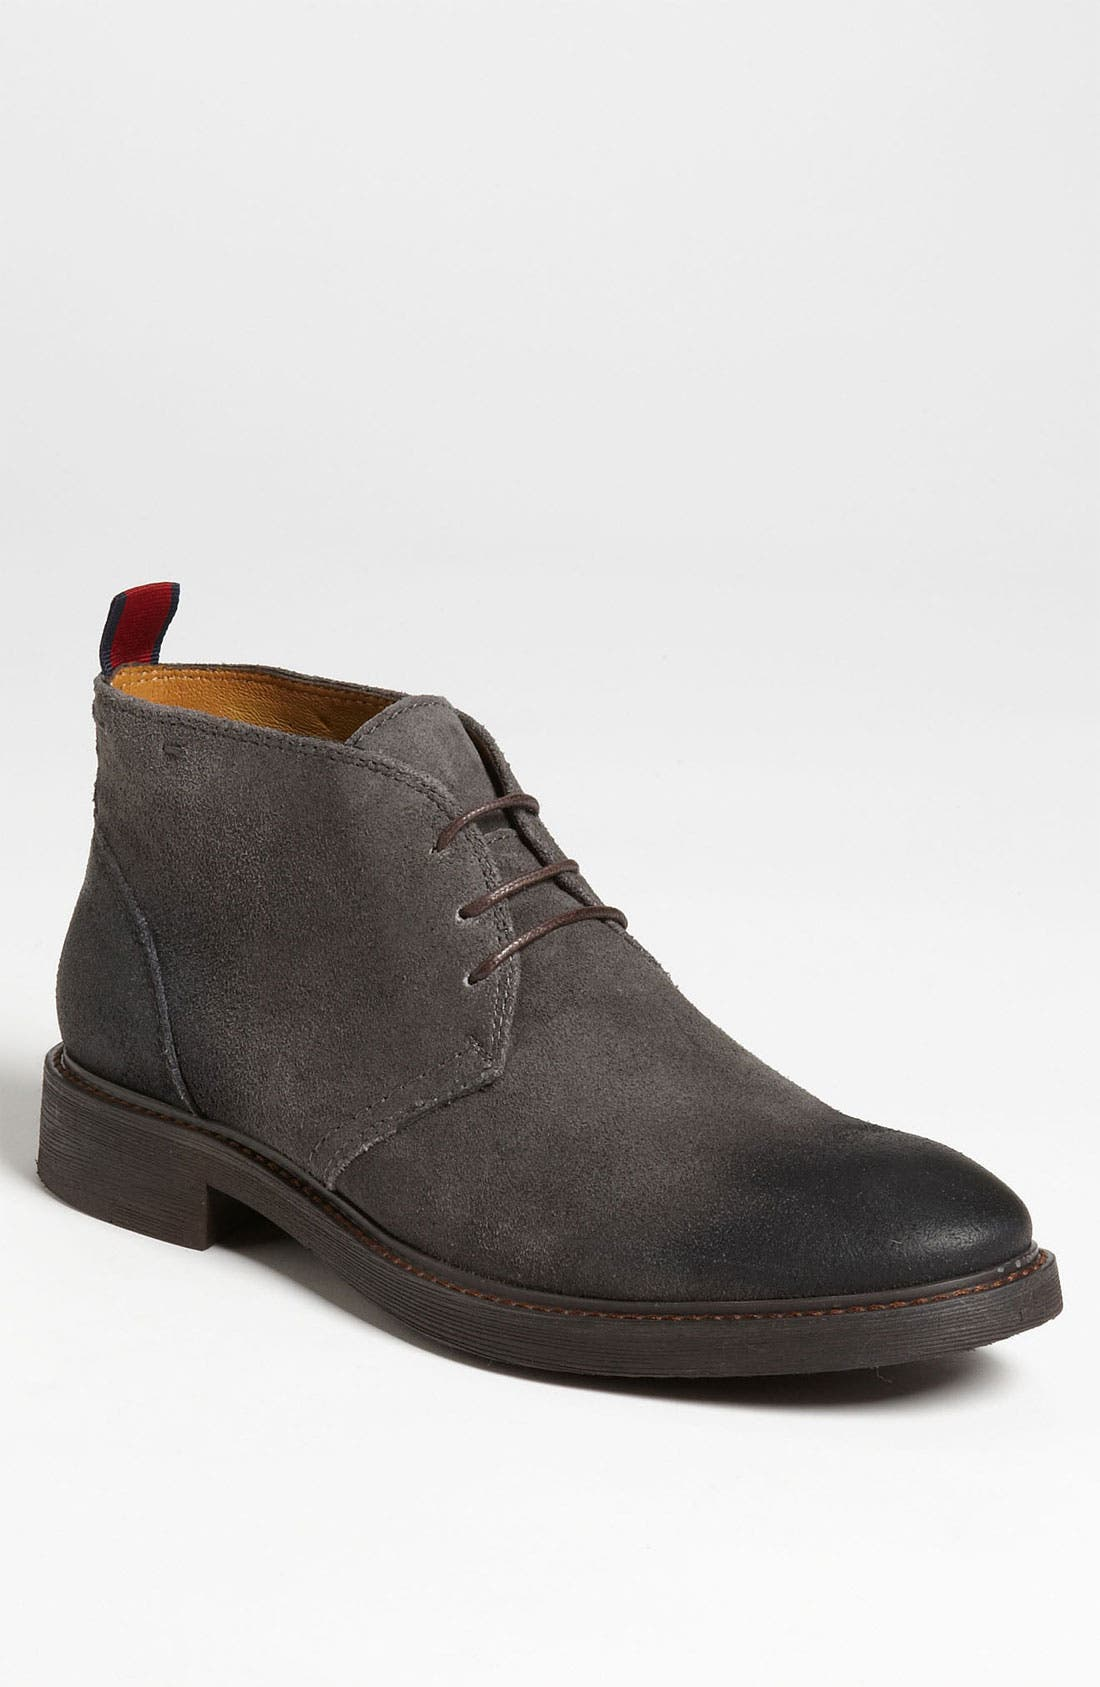 Alternate Image 1 Selected - 1901 'Castle' Chukka Boot